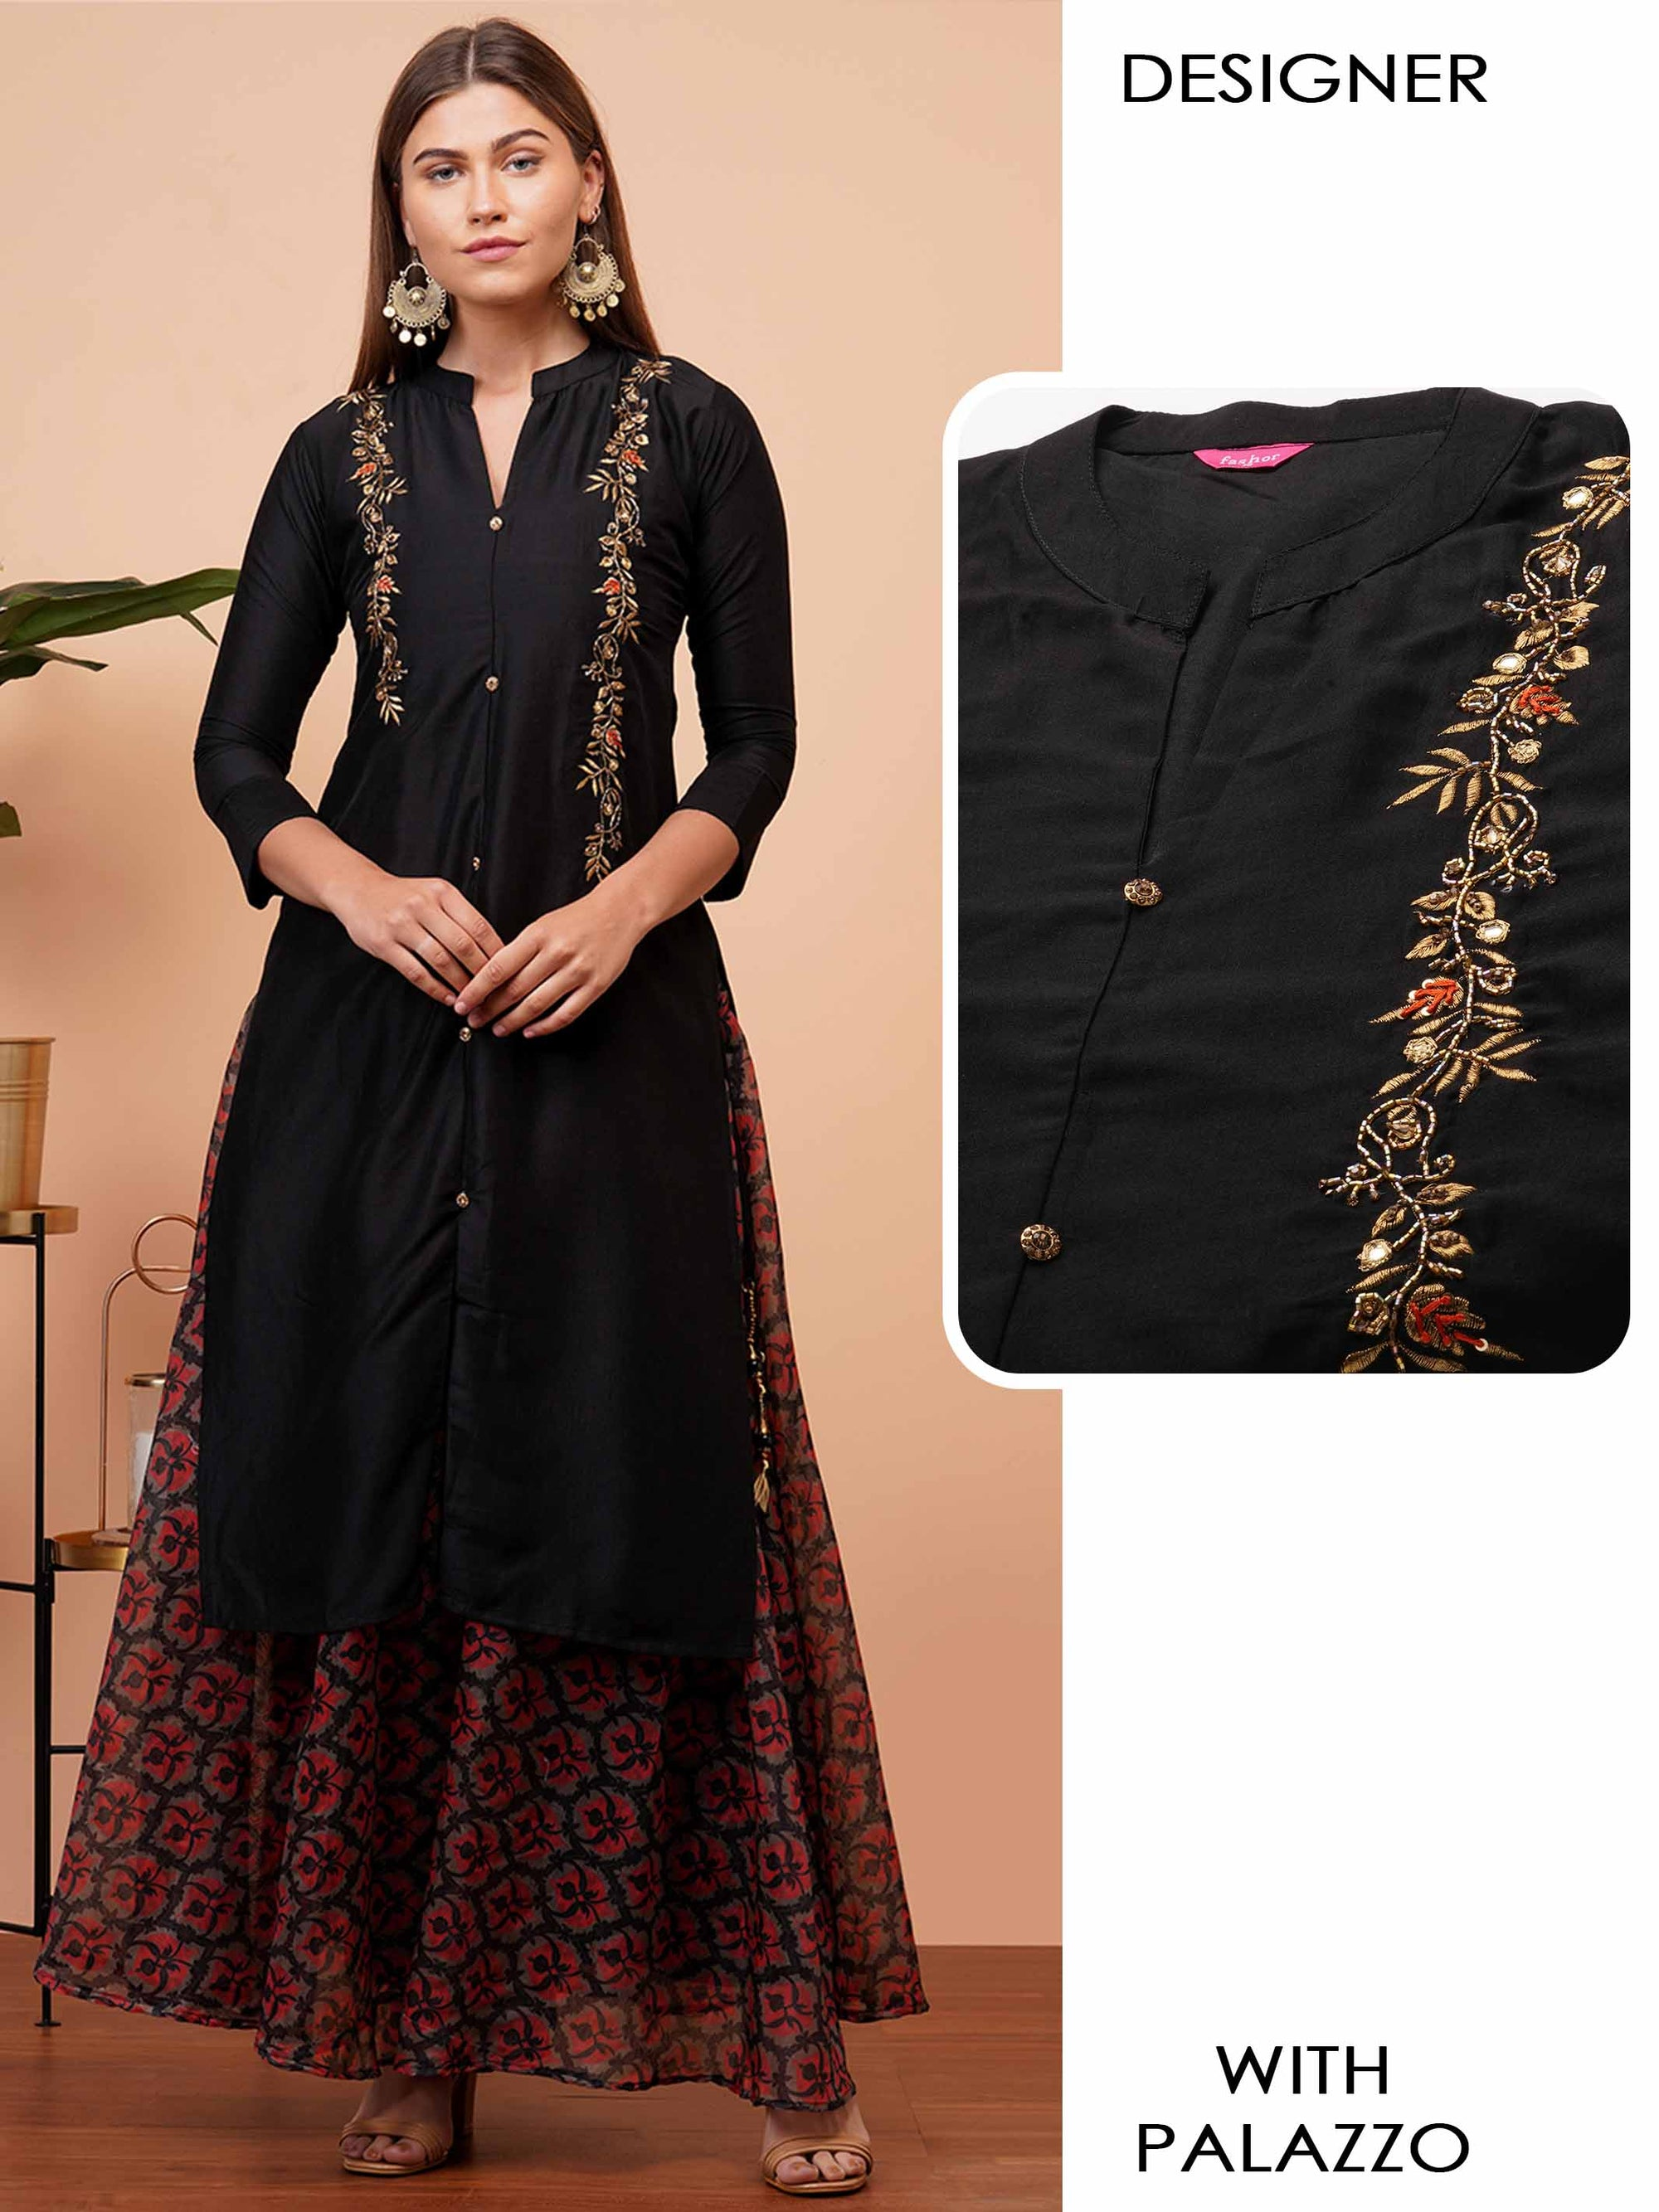 Floral Embroidered & Embellished Kurta with Floral Printed Palazzo - Black